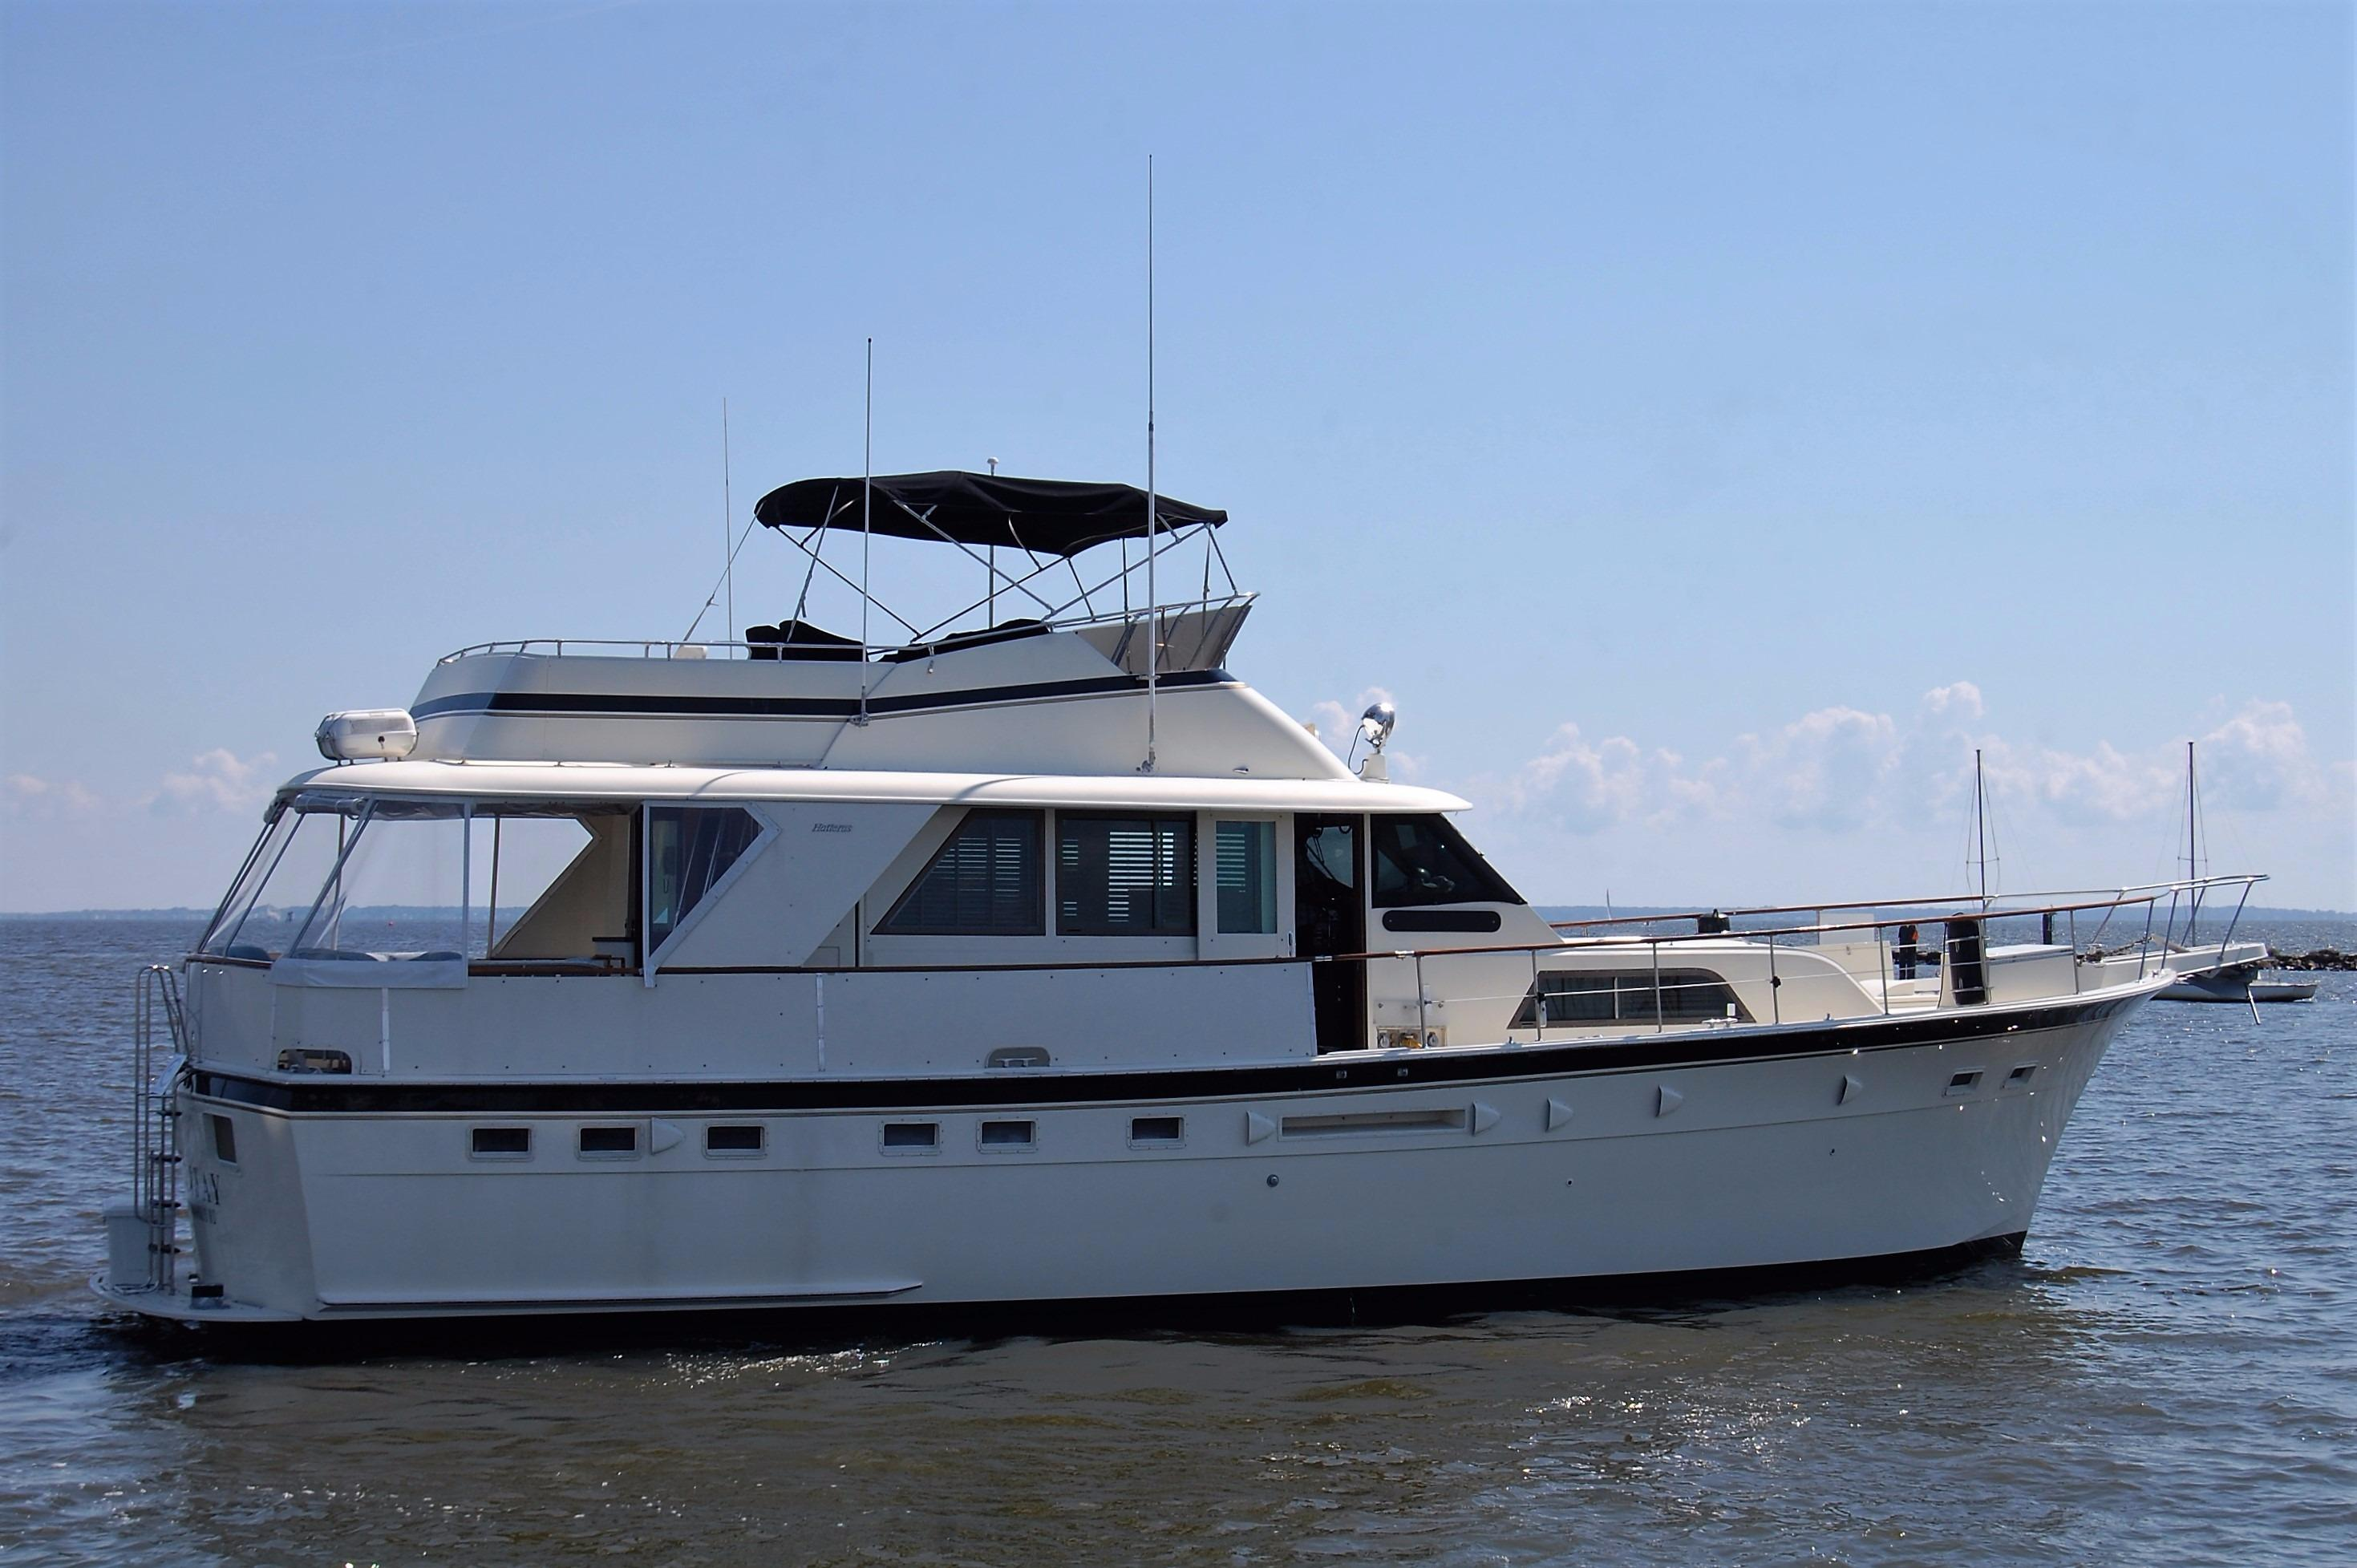 Used hatteras yachts for sale from 50 to 60 feet for Large motor yachts for sale